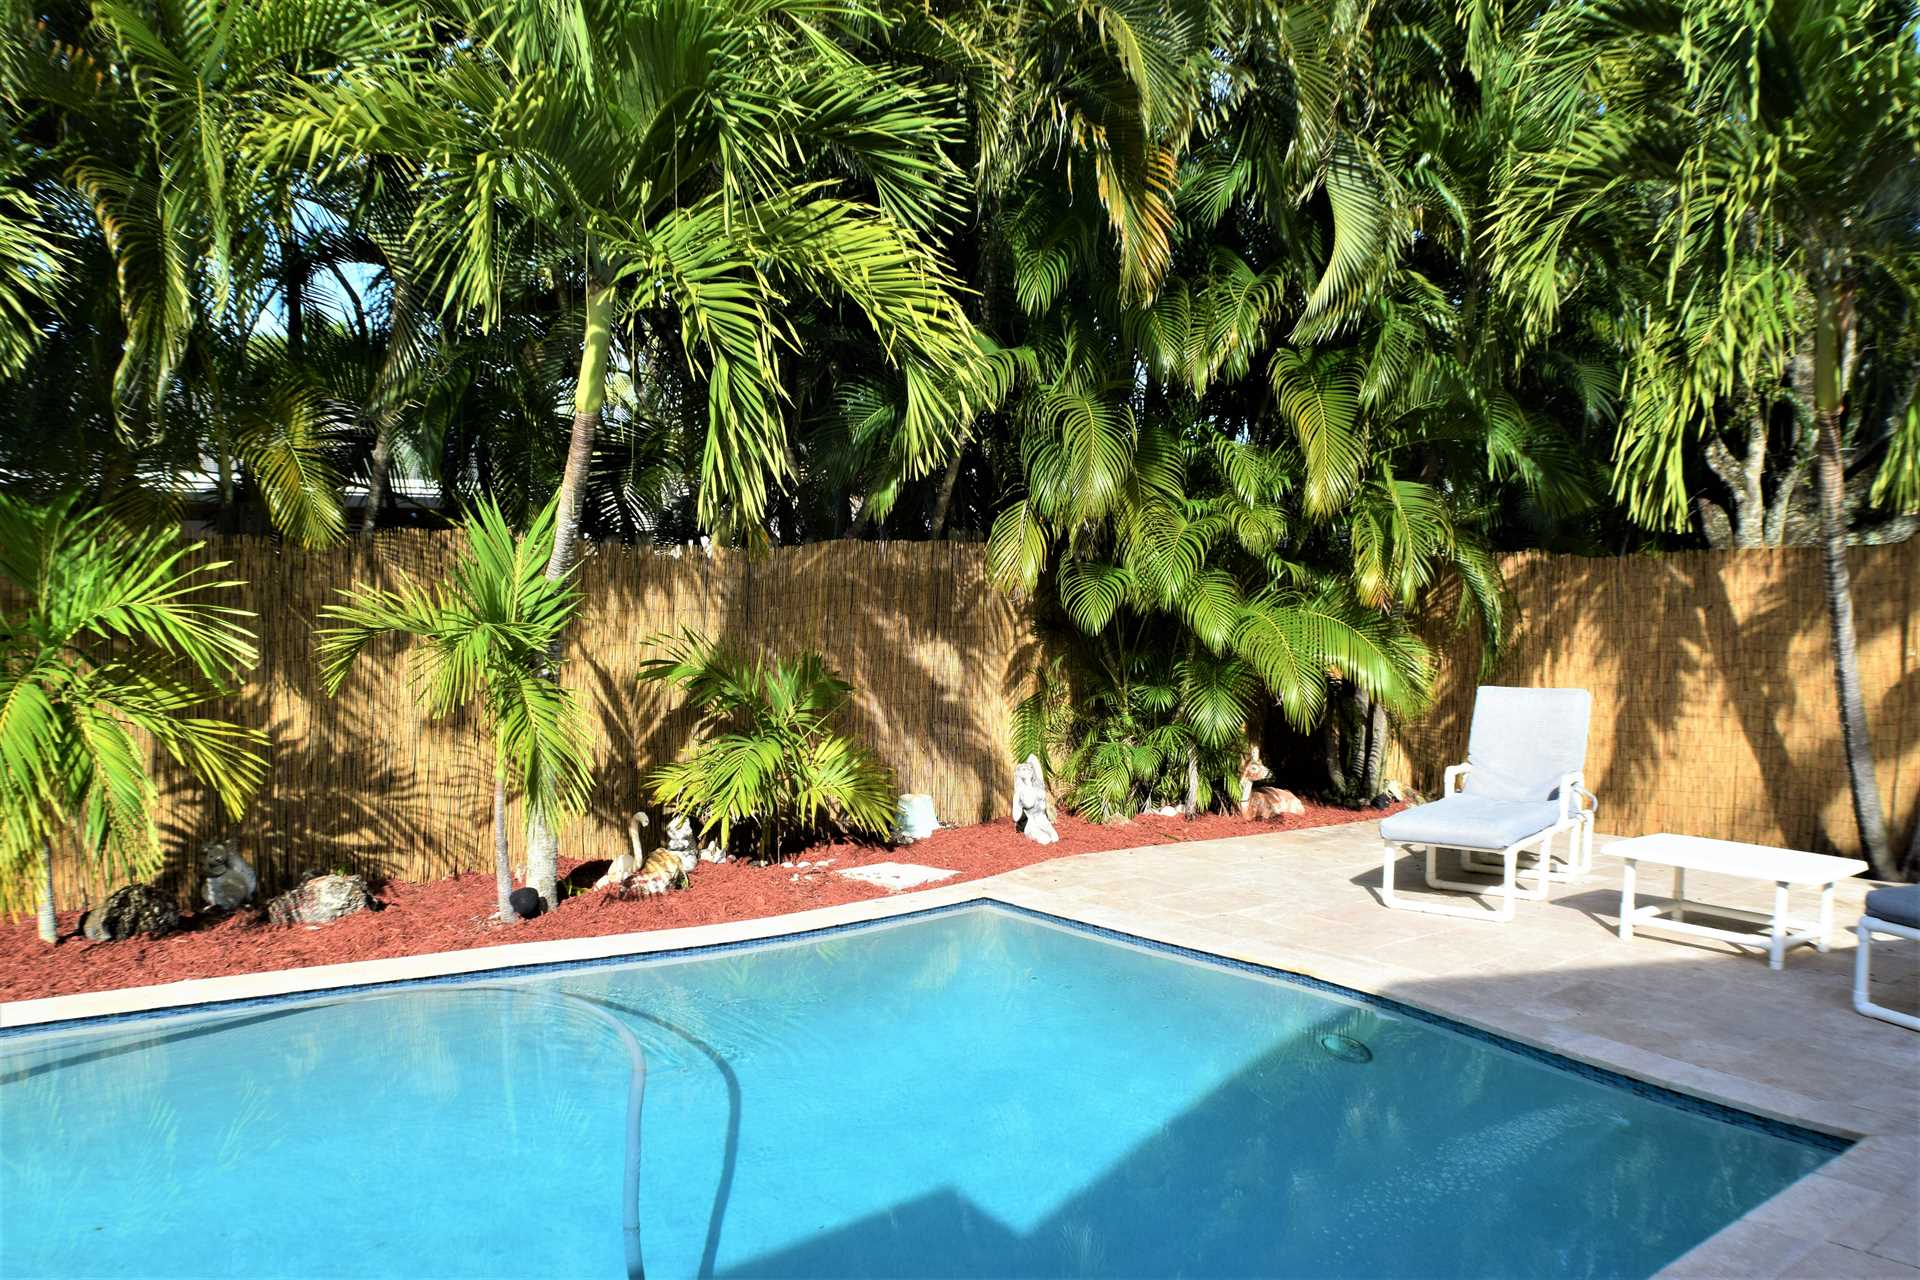 Heated pool (optionally) is ready for family fun.